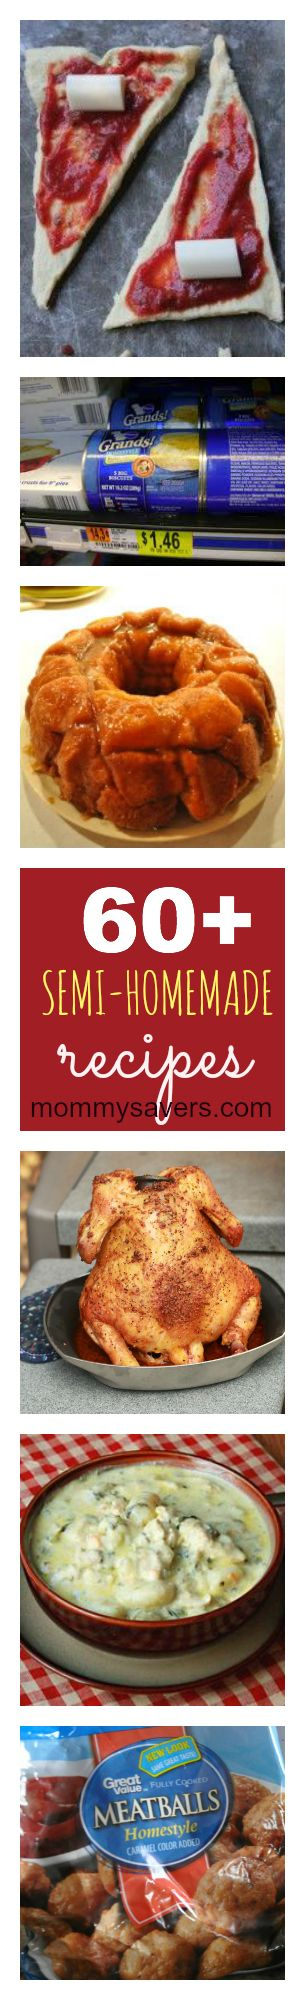 Semi-Homemade Recipes:  60+ Quick, Easy, and Delicious Dishes